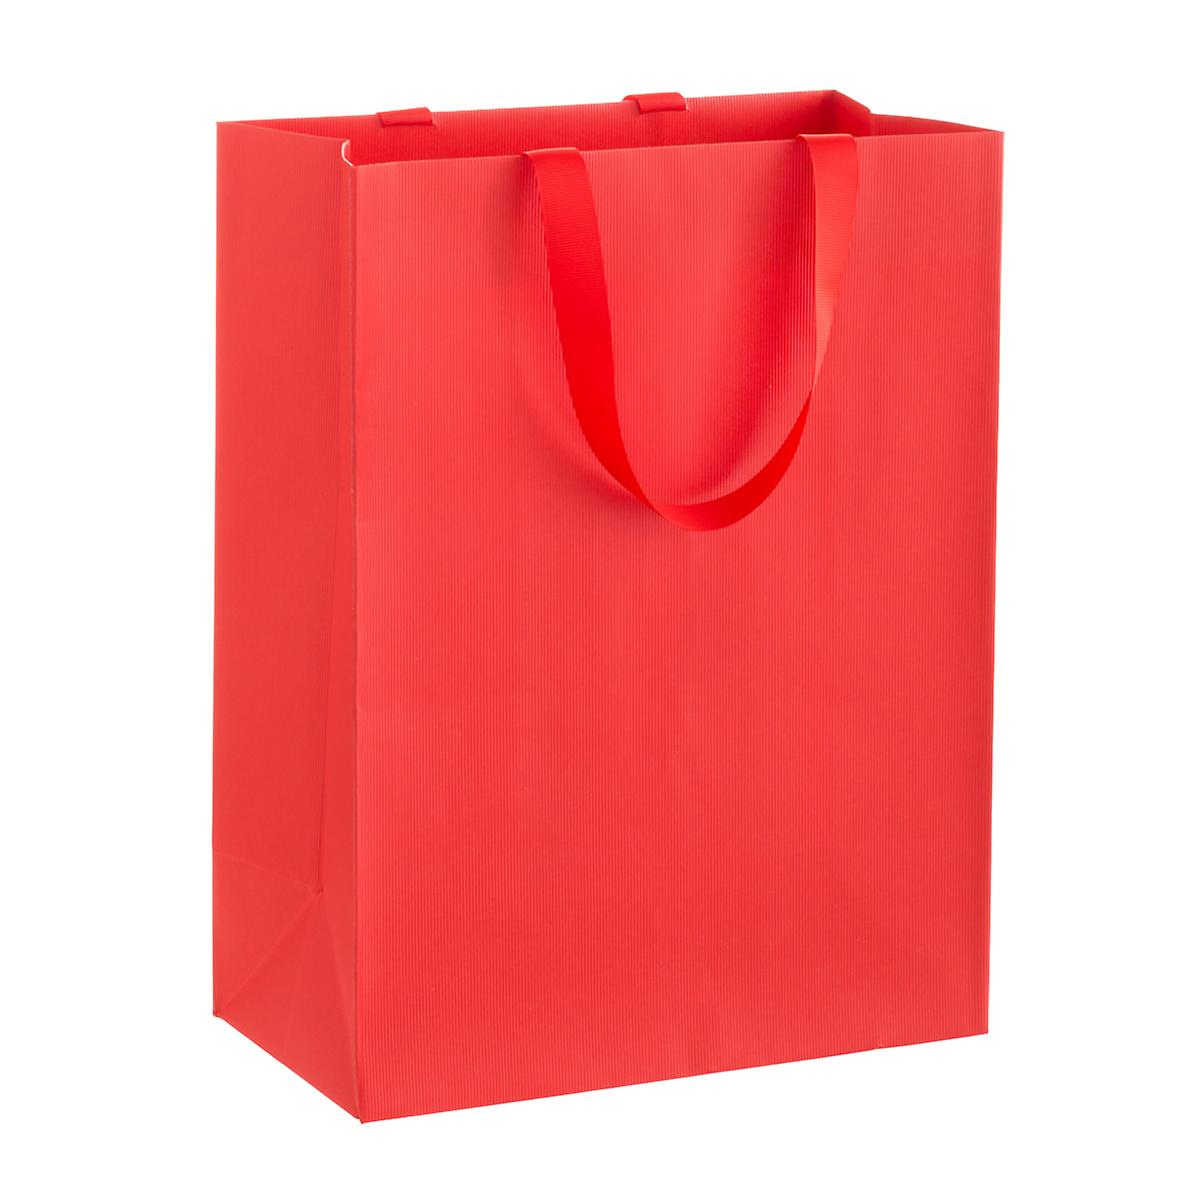 Solid Red Large Gift Bag